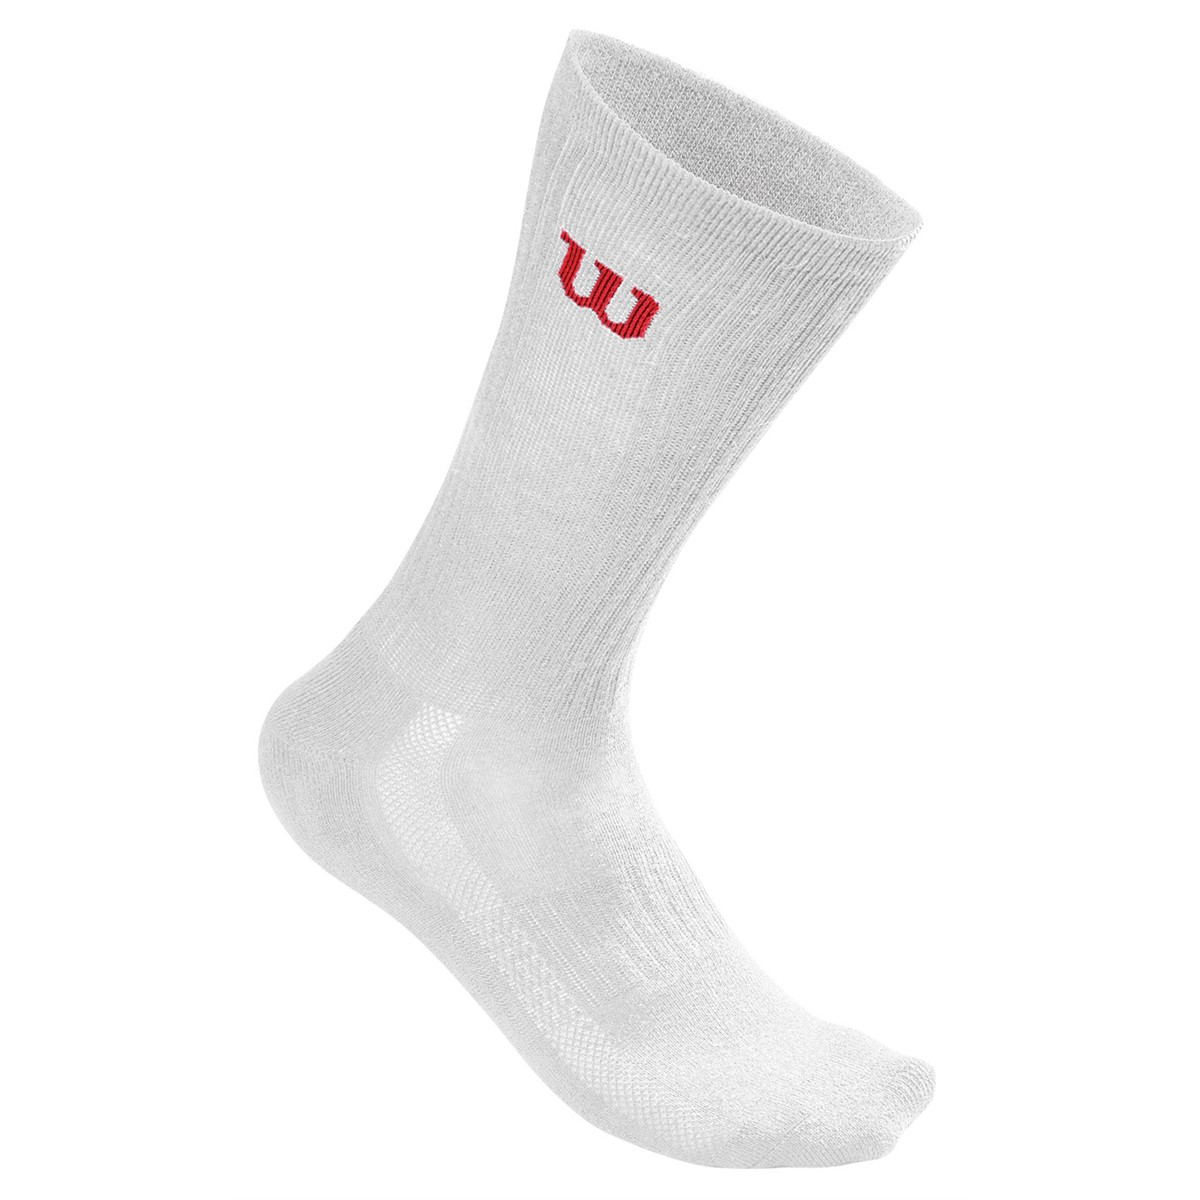 Champion Men's 6-Pairs Athletic Crew Socks, Size: , White. Boost your fitness with better basics, like these men's athletic crew socks from Champion. This six-pack of socks readies feet for activity with a soft stretch fit that's fully cushioned and equipped with targeted arch support.